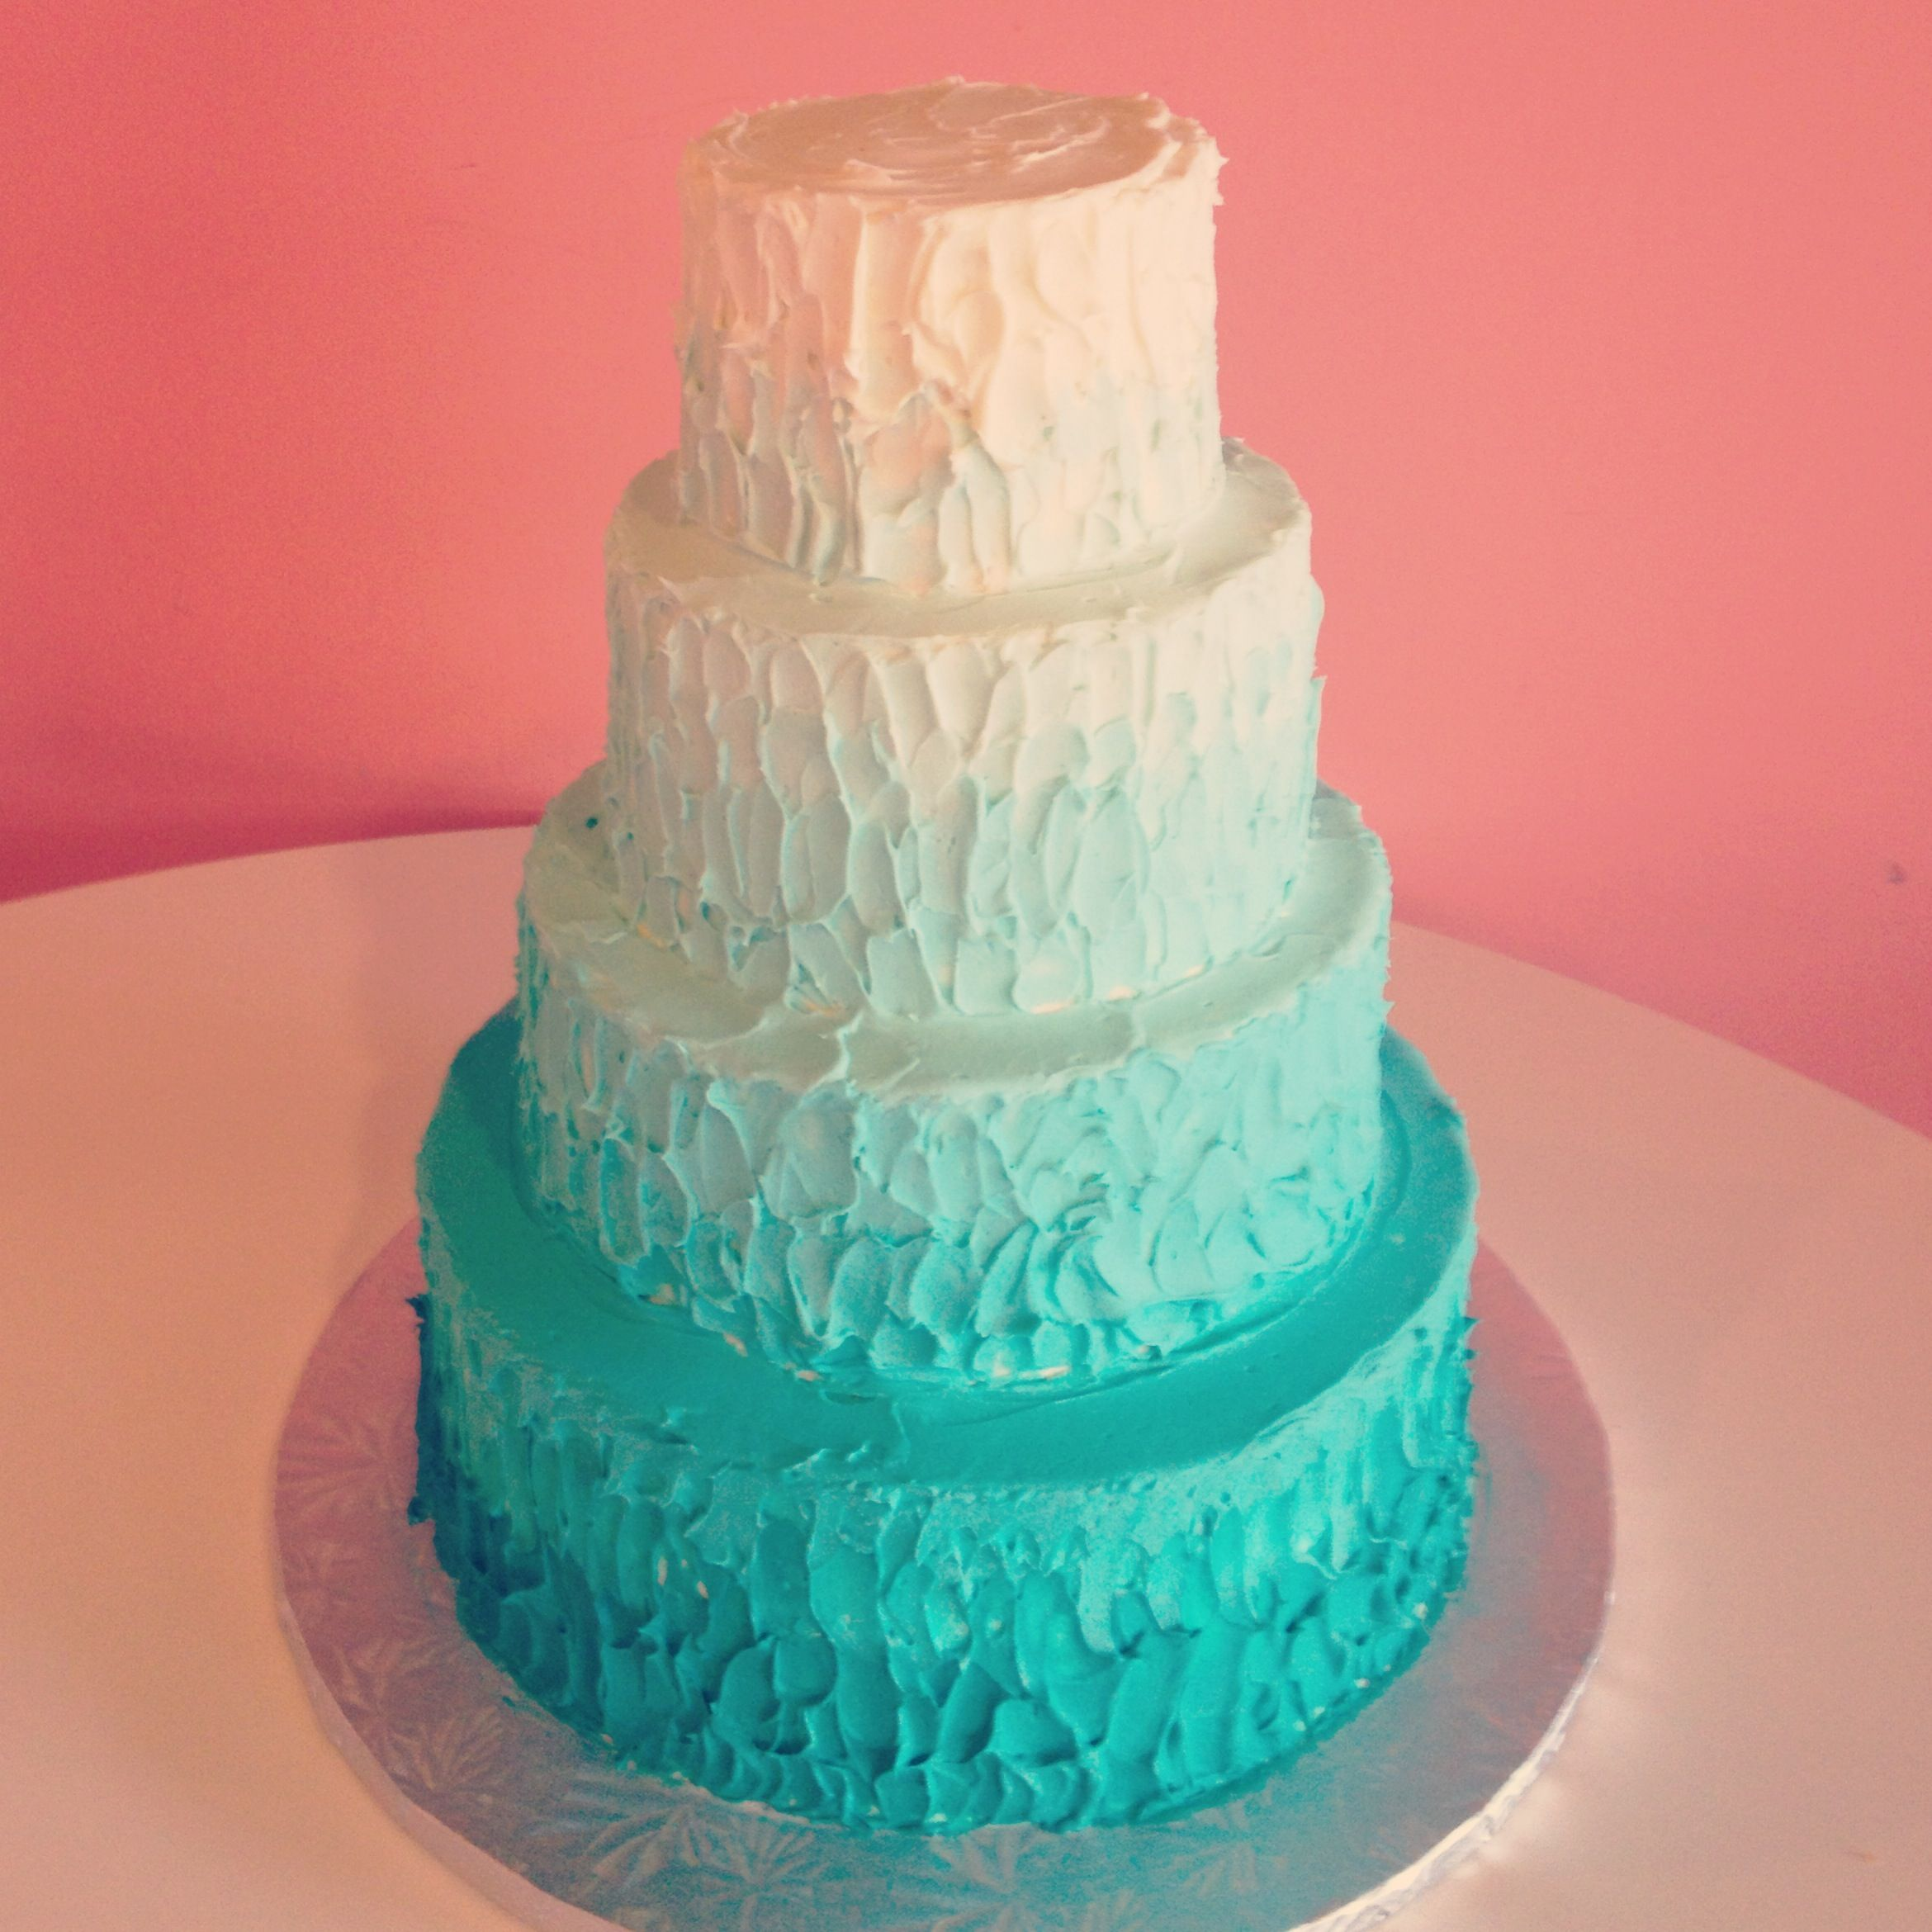 wedding cakes in new braunfels tx turquoise ombre wedding cake by 2tarts bakery new 24709